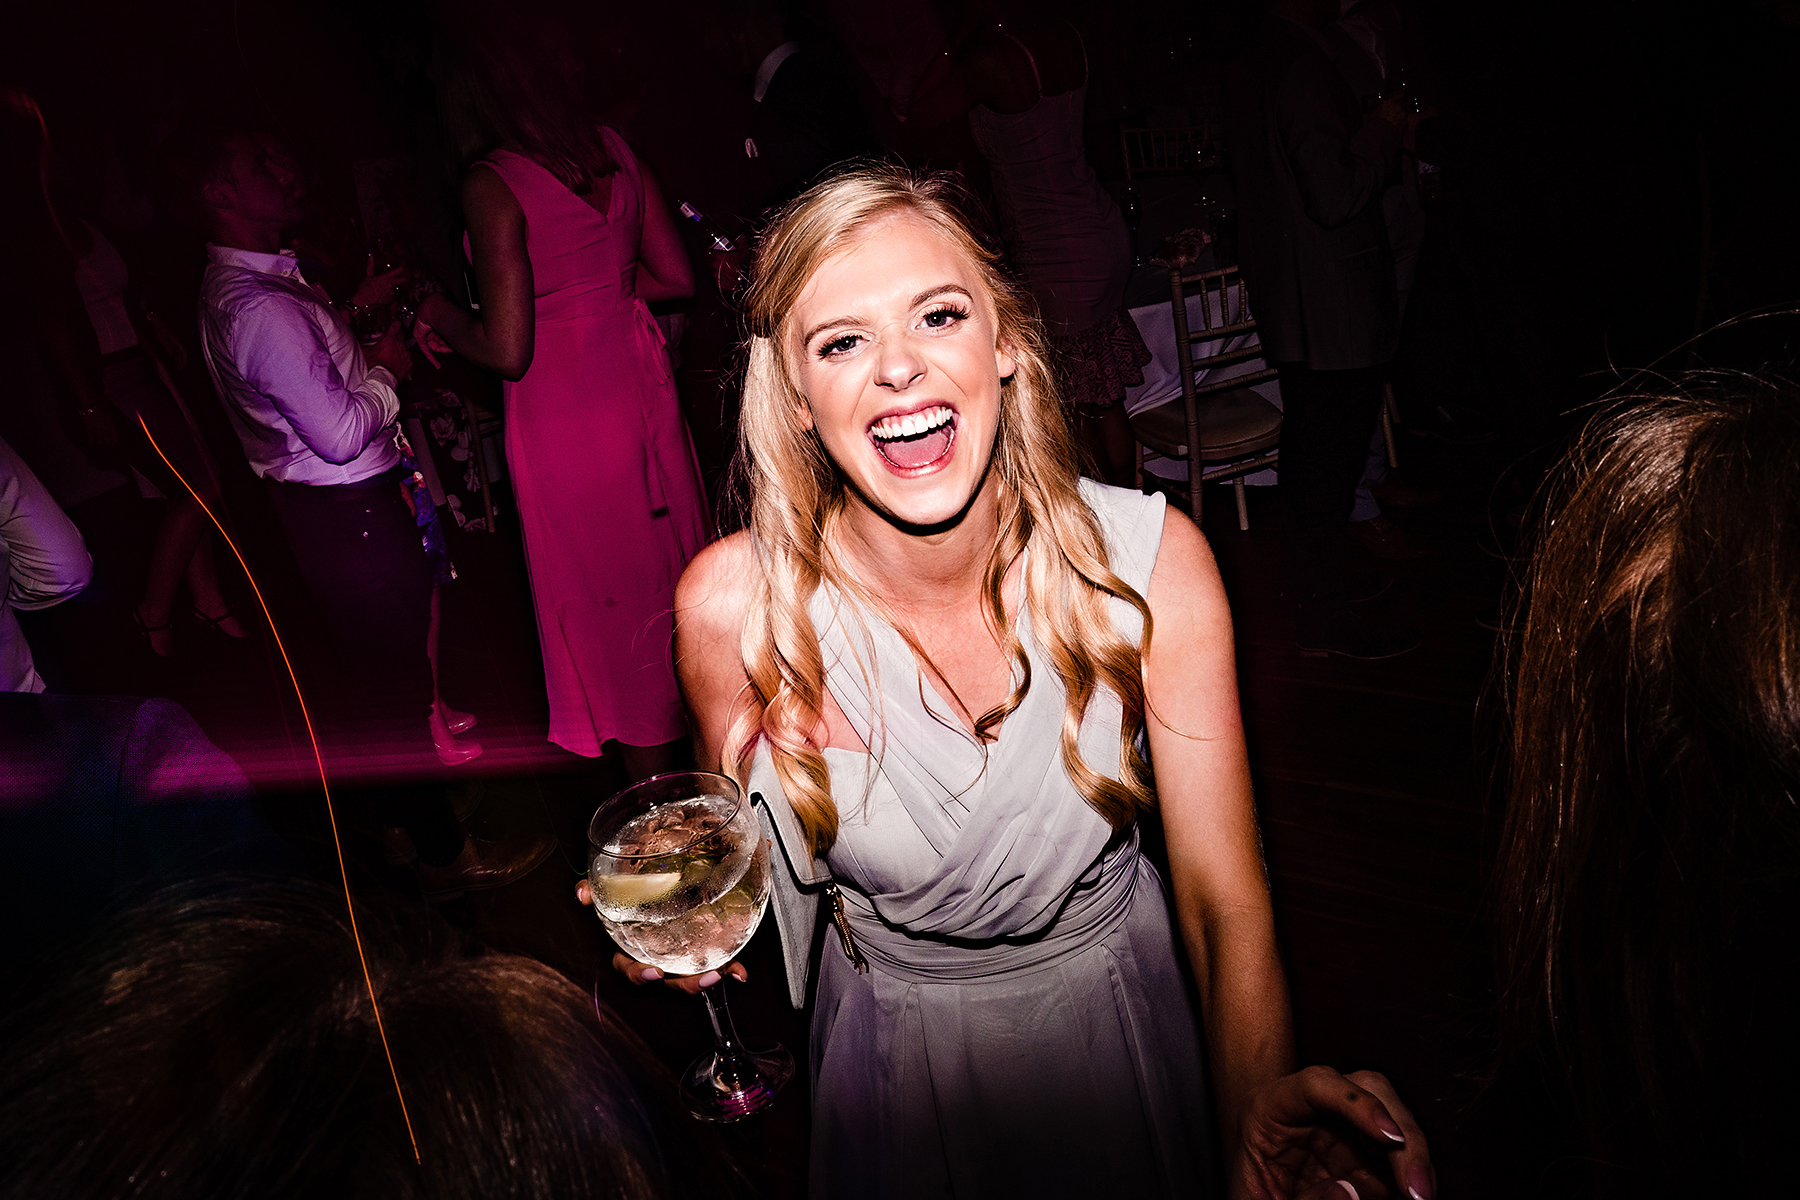 a bridesmaid with a drink in her hand